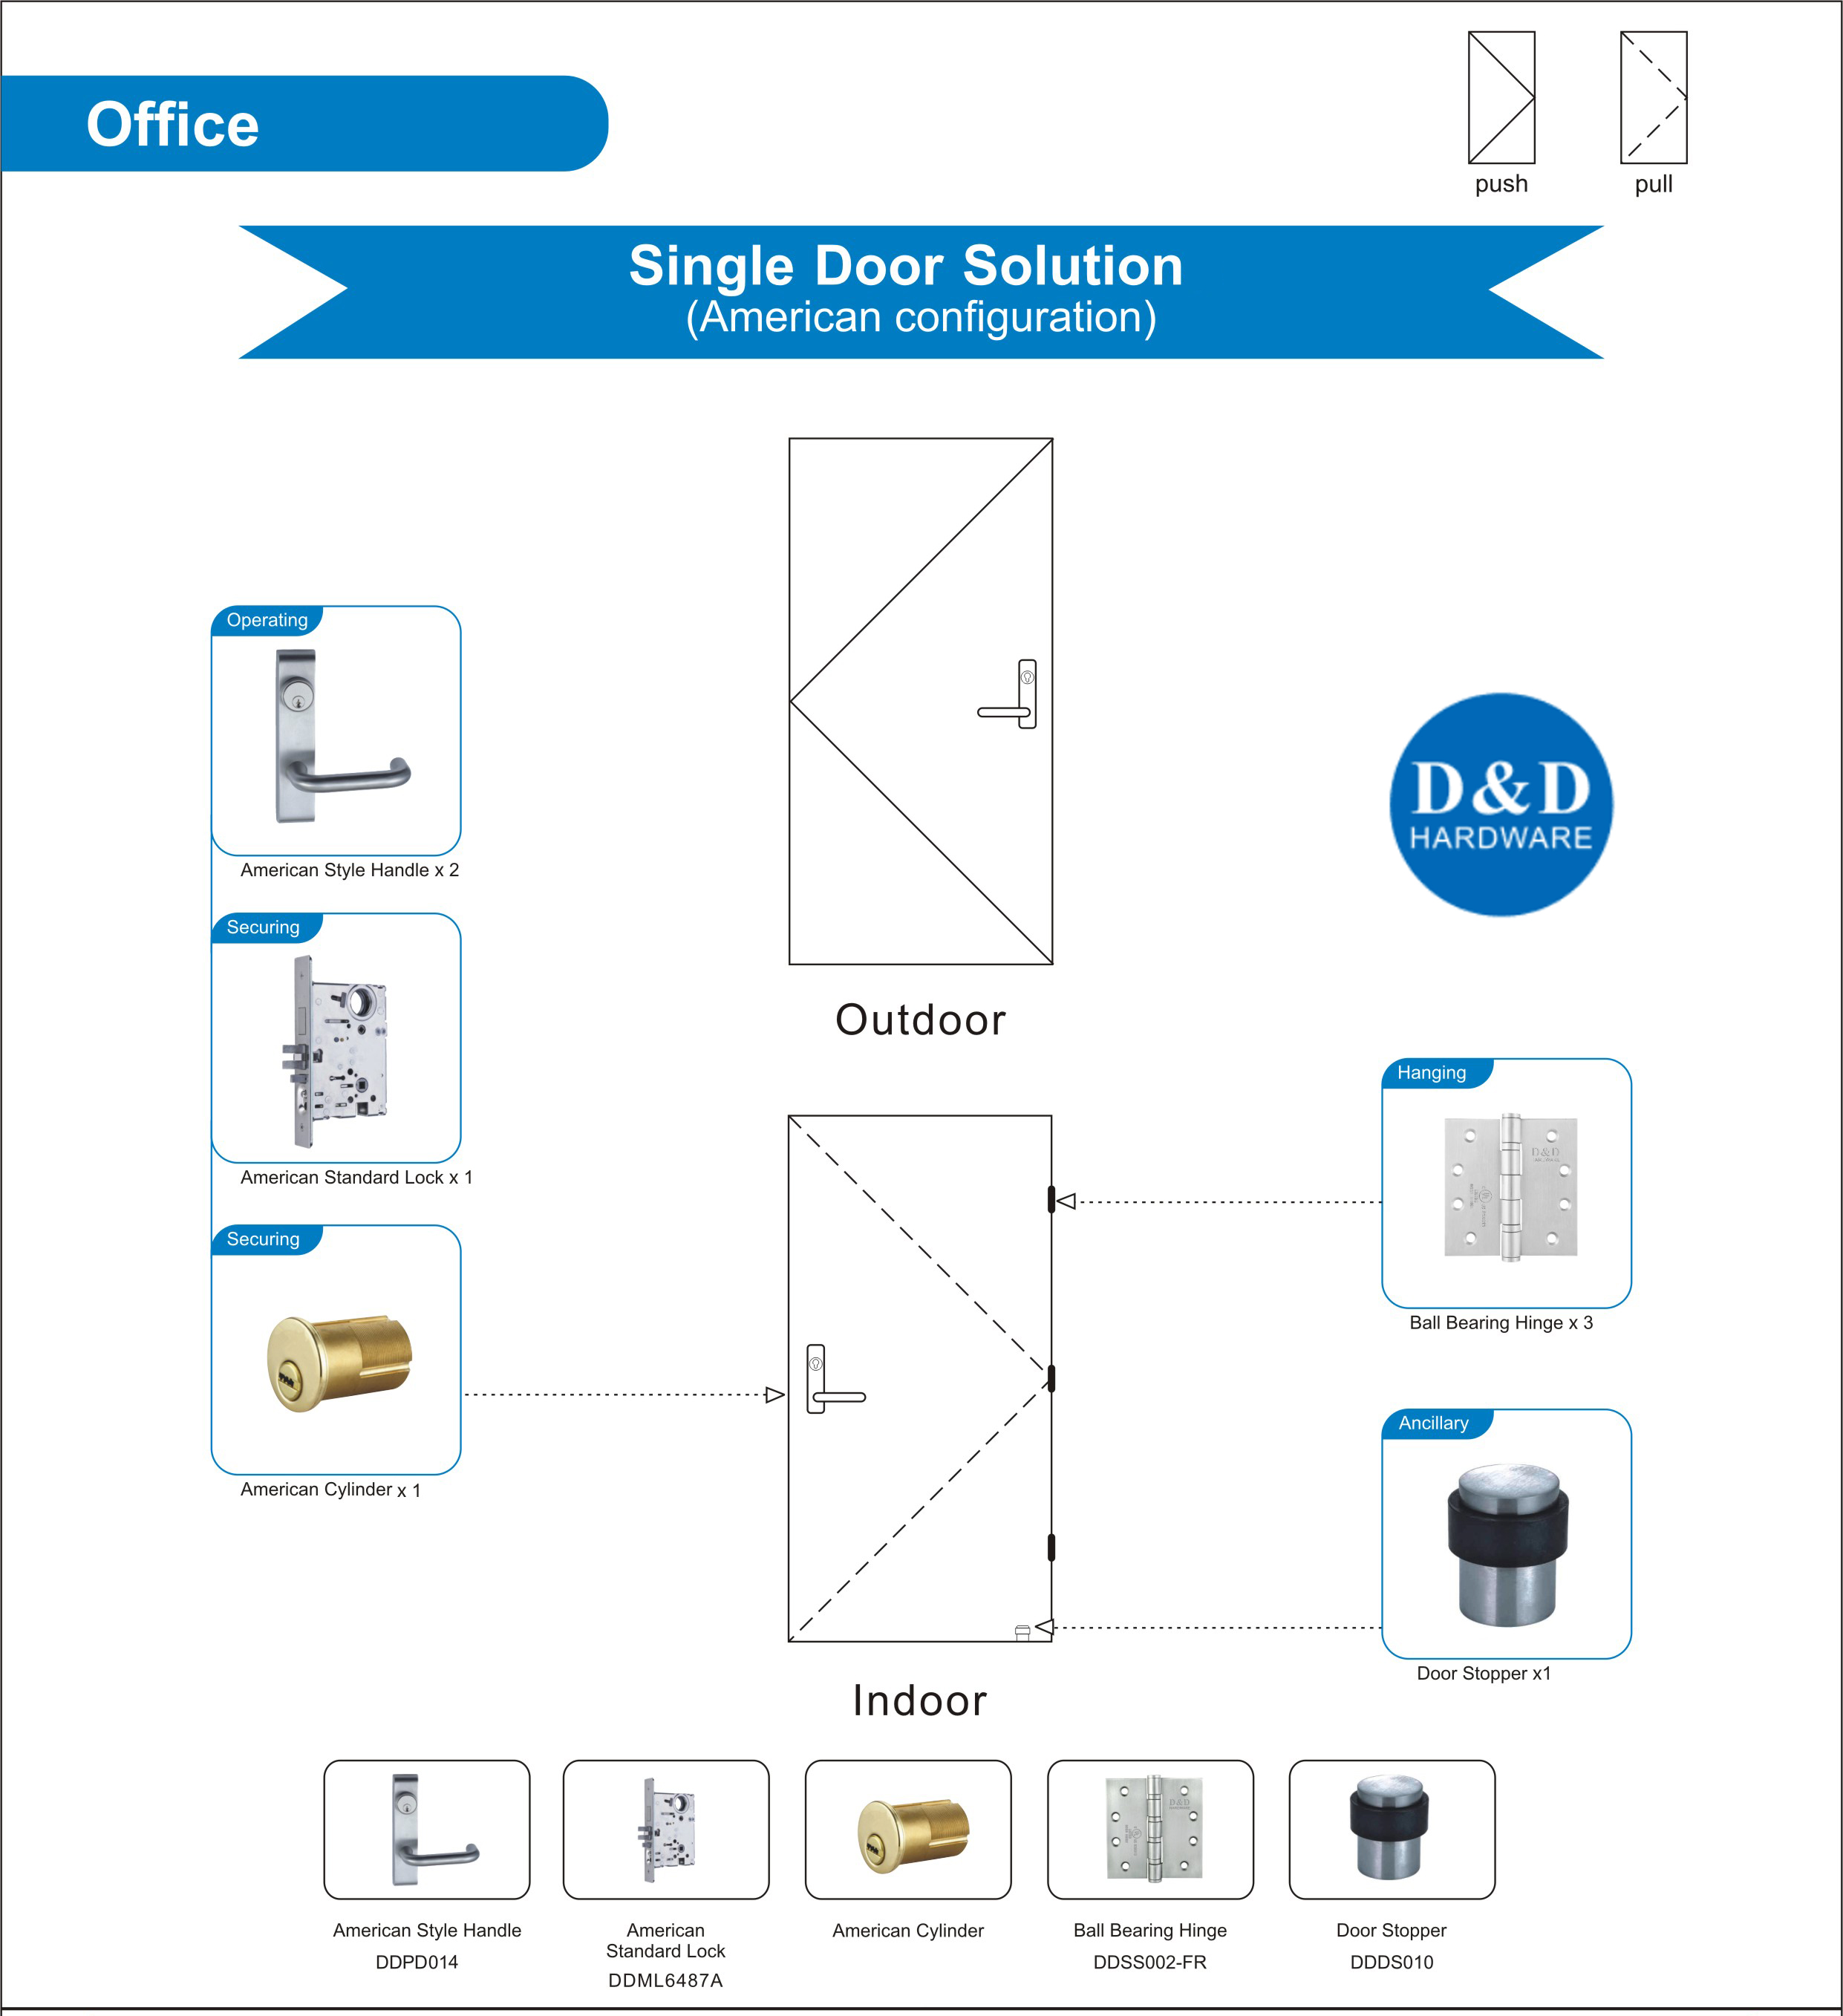 Building Hardware Solution for Office Single Door